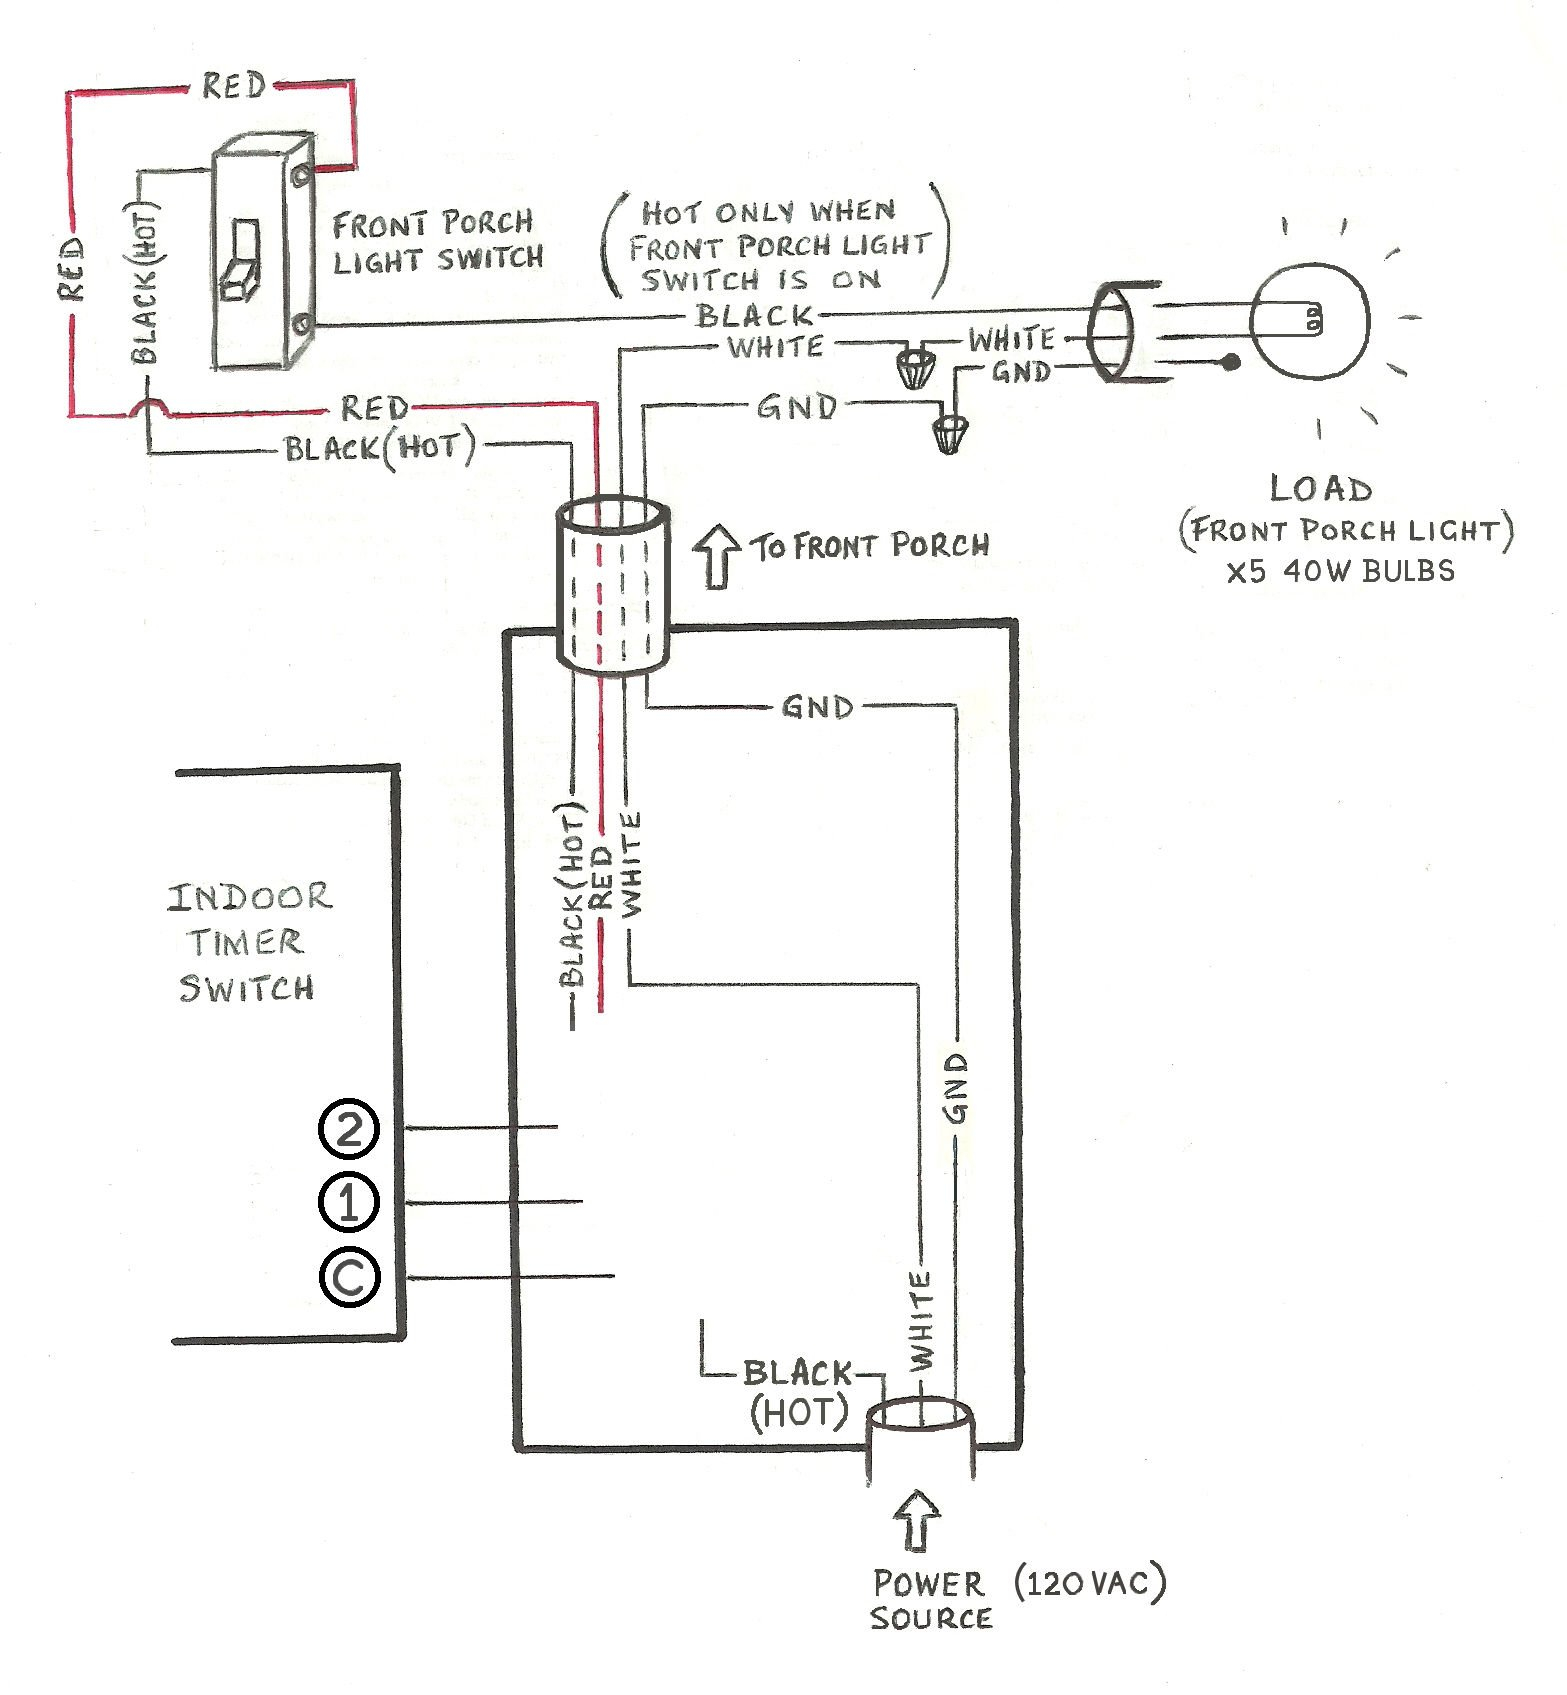 Leviton Three Way Dimmer Switch Wiring Diagram - Dimmer Switch Wiring  Diagram Leviton 3 Way Rotary